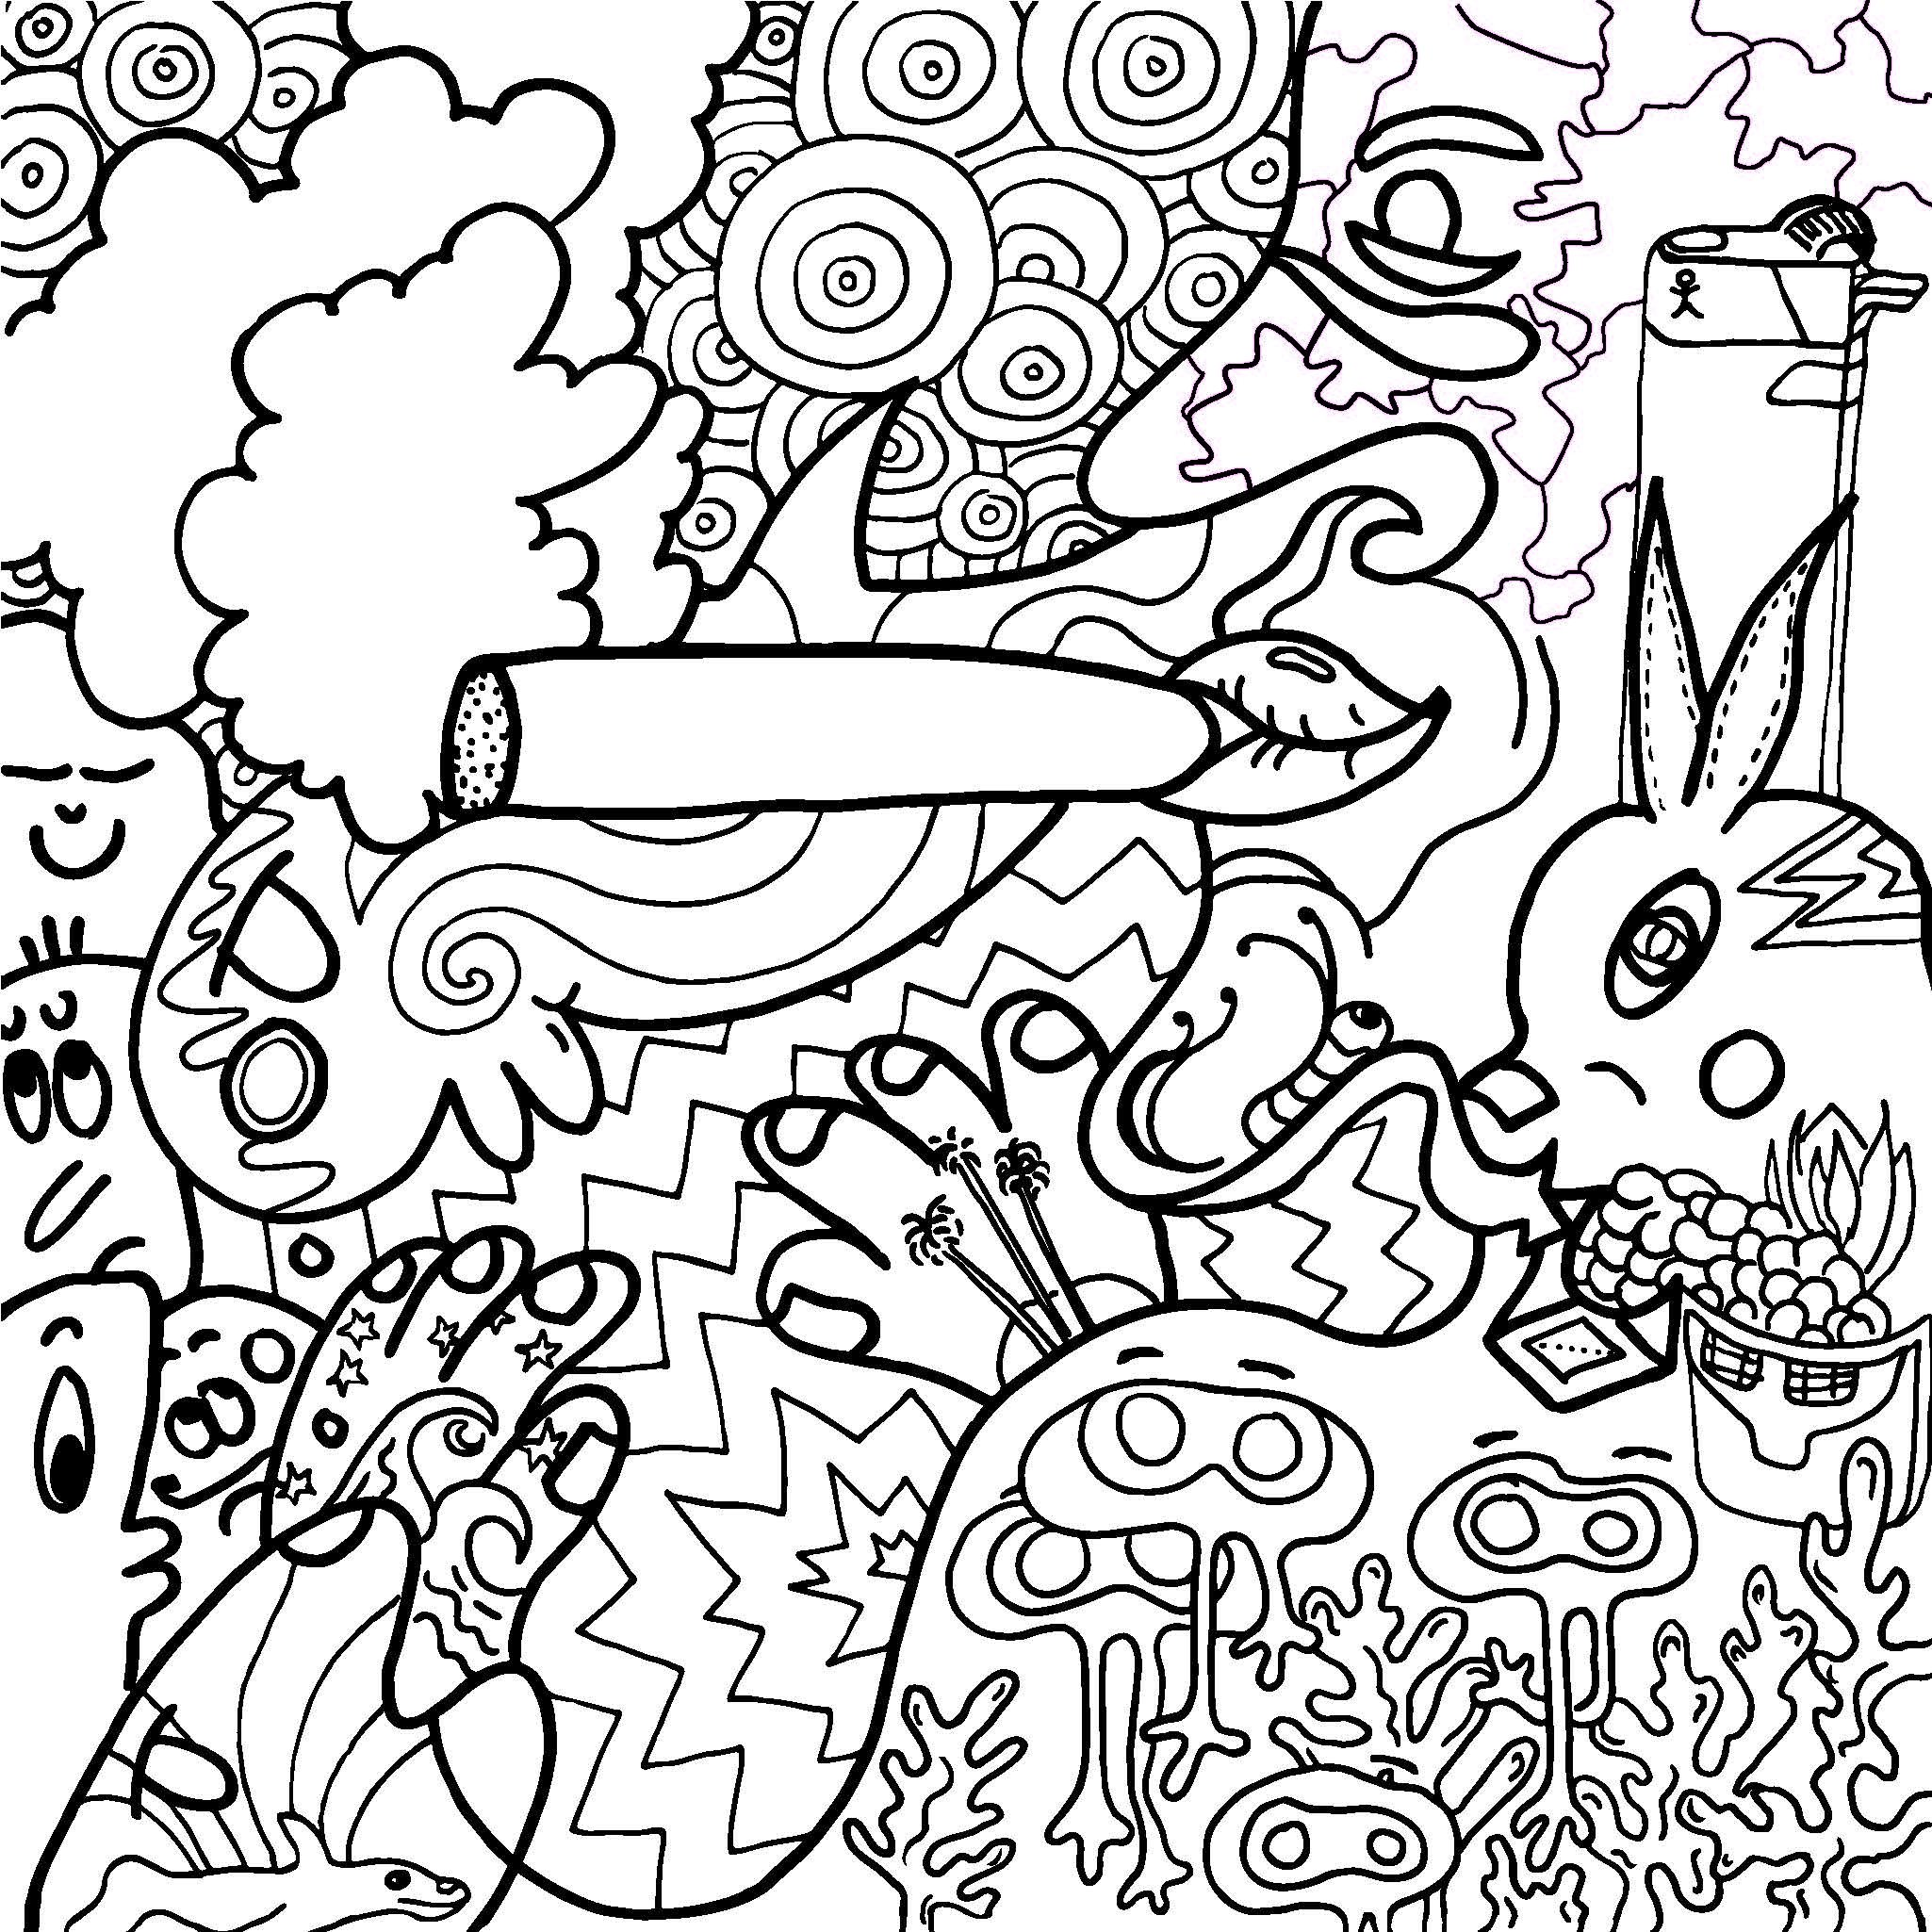 The Stoners Coloring Book For High Minded Adults Jared Hoffman 9780143130291 Amazon Books